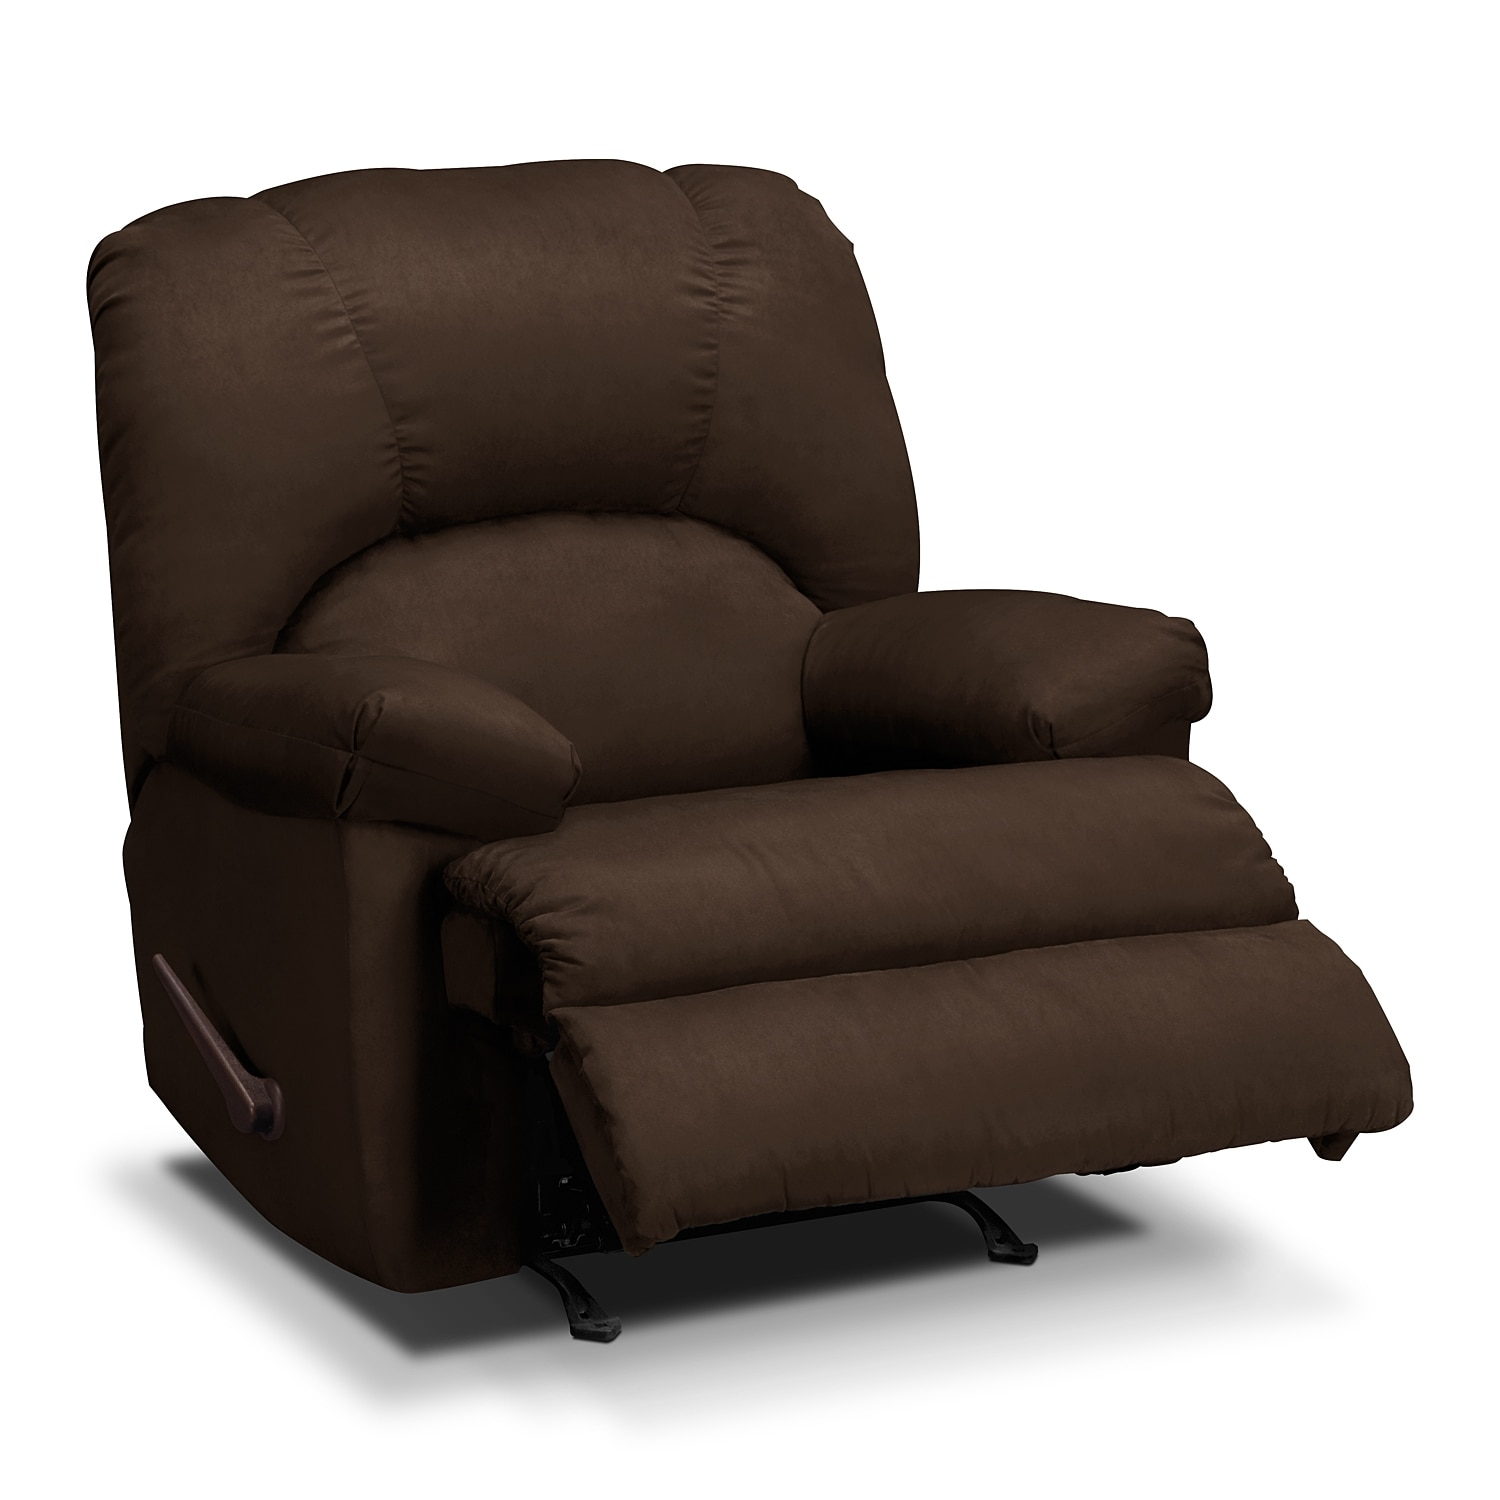 Quincy Rocker Recliner Chocolate Value City Furniture